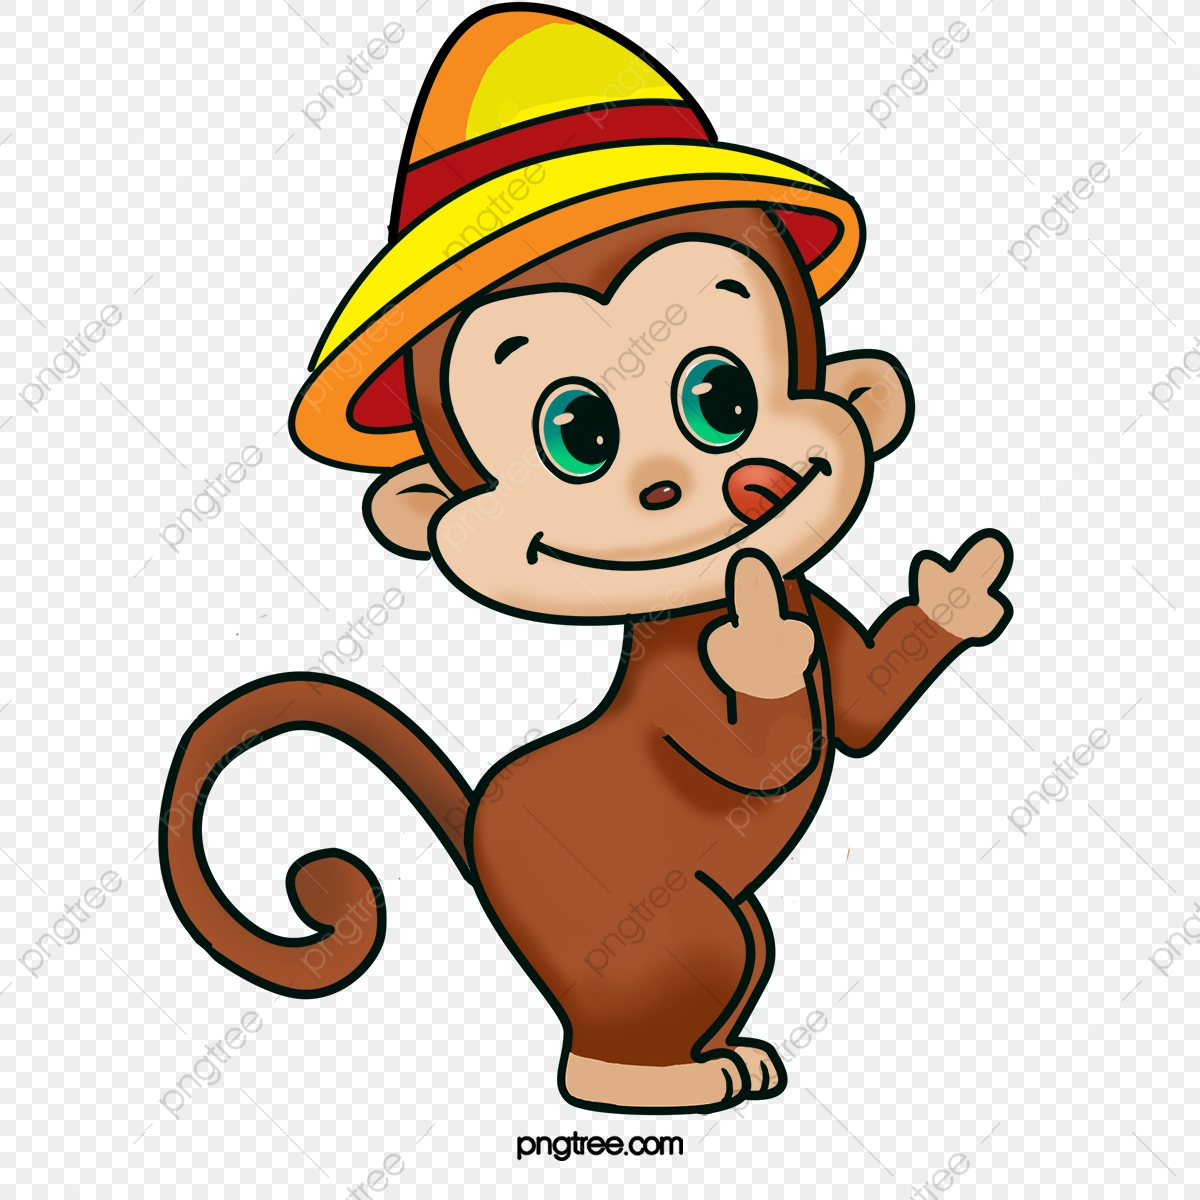 Naughty Monkey, Monkey Clipart, Monkey, Cartoon PNG.